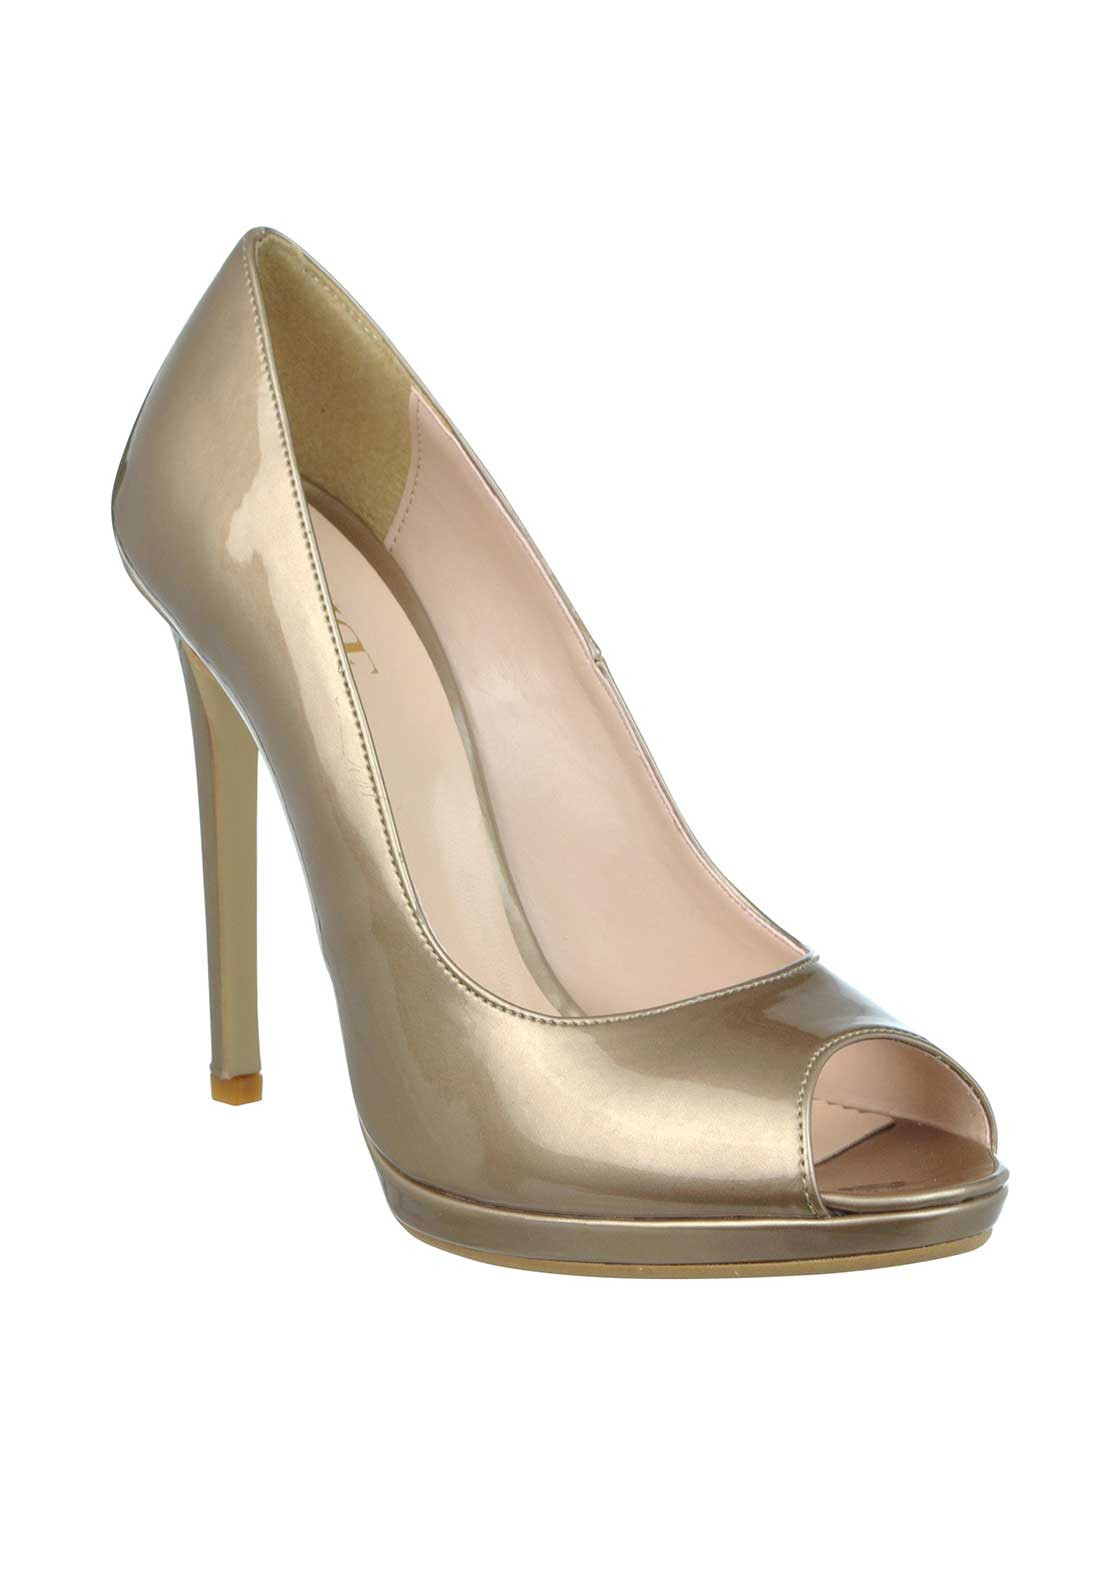 McElhinney's Patent Peep Toe Heeled Shoes, Taupe